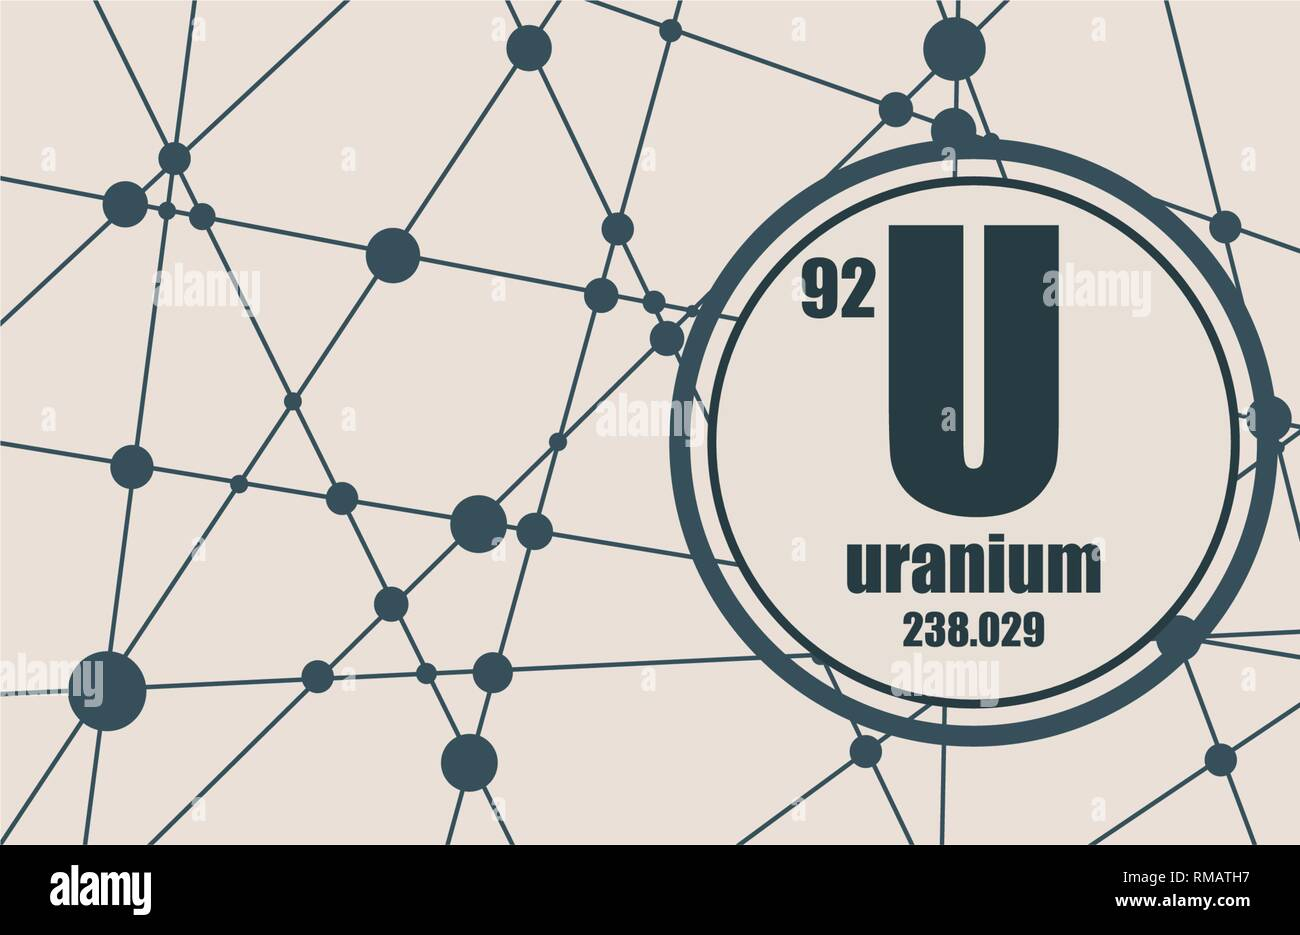 hight resolution of uranium chemical element